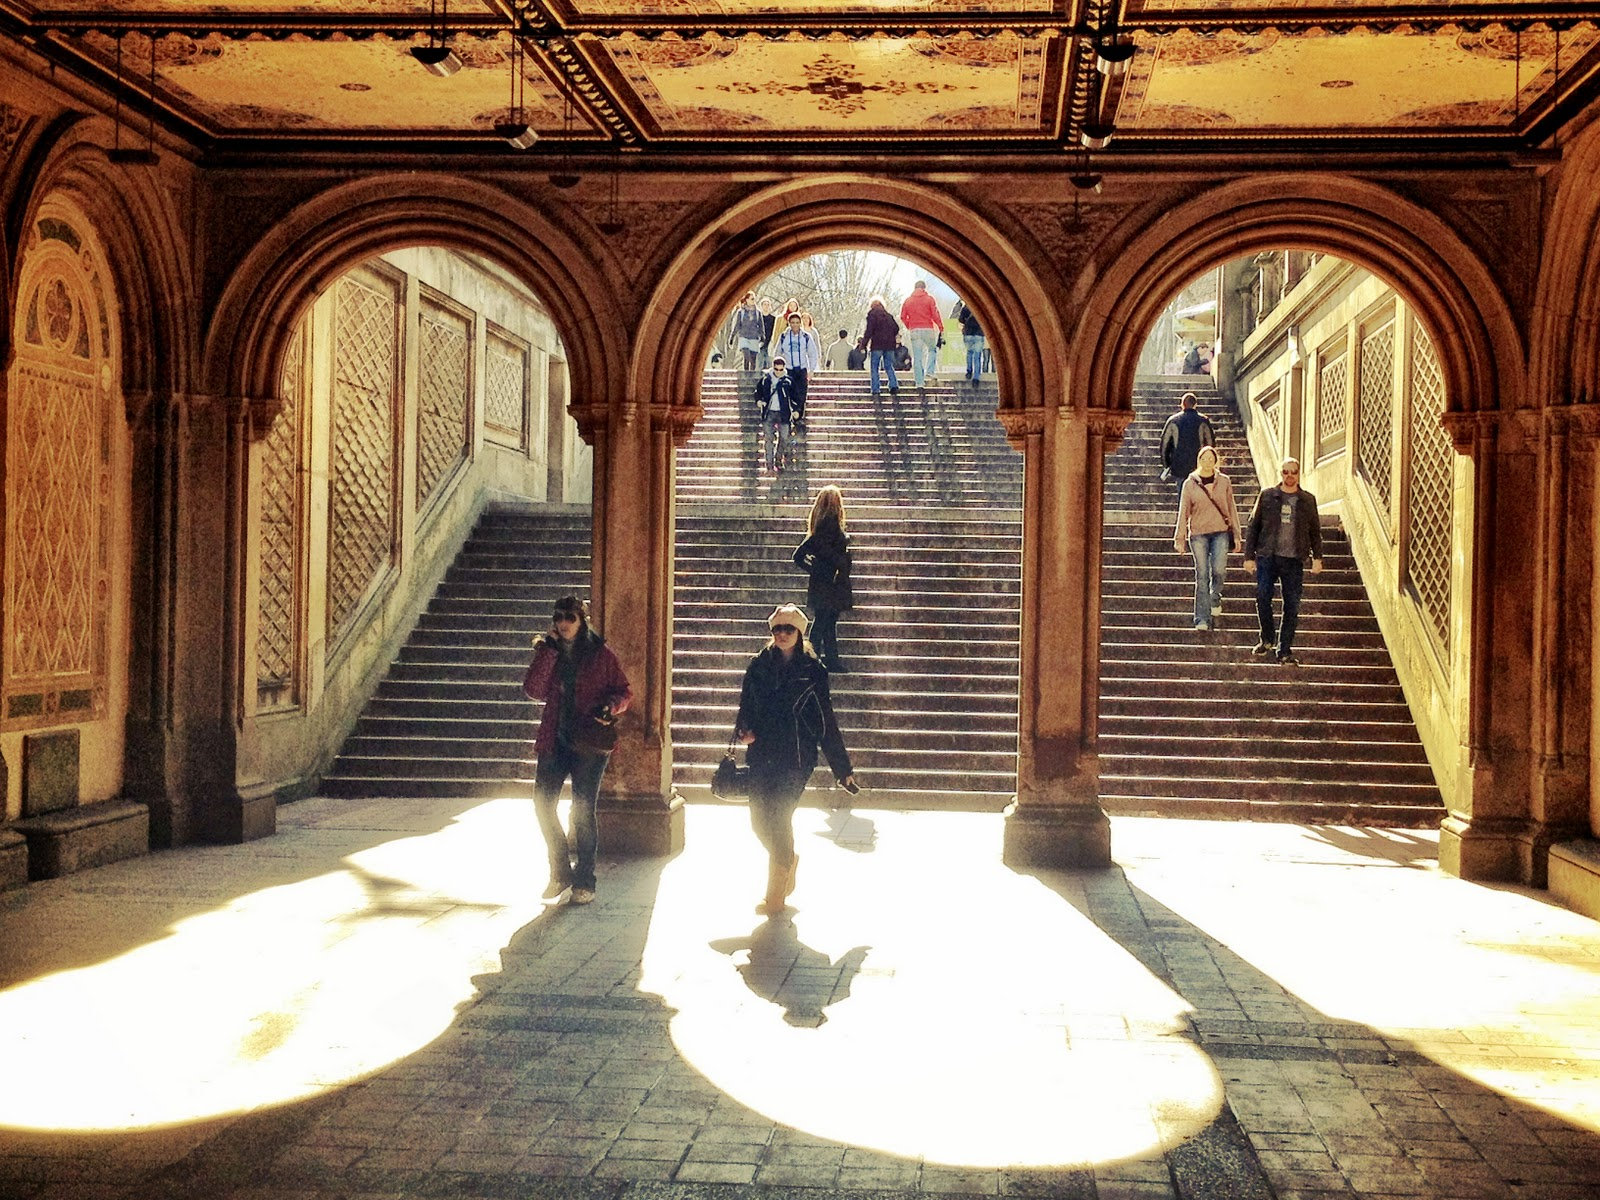 Steps leading to the Bethesda Fountain in Central Park, New York. Taken using Camera+